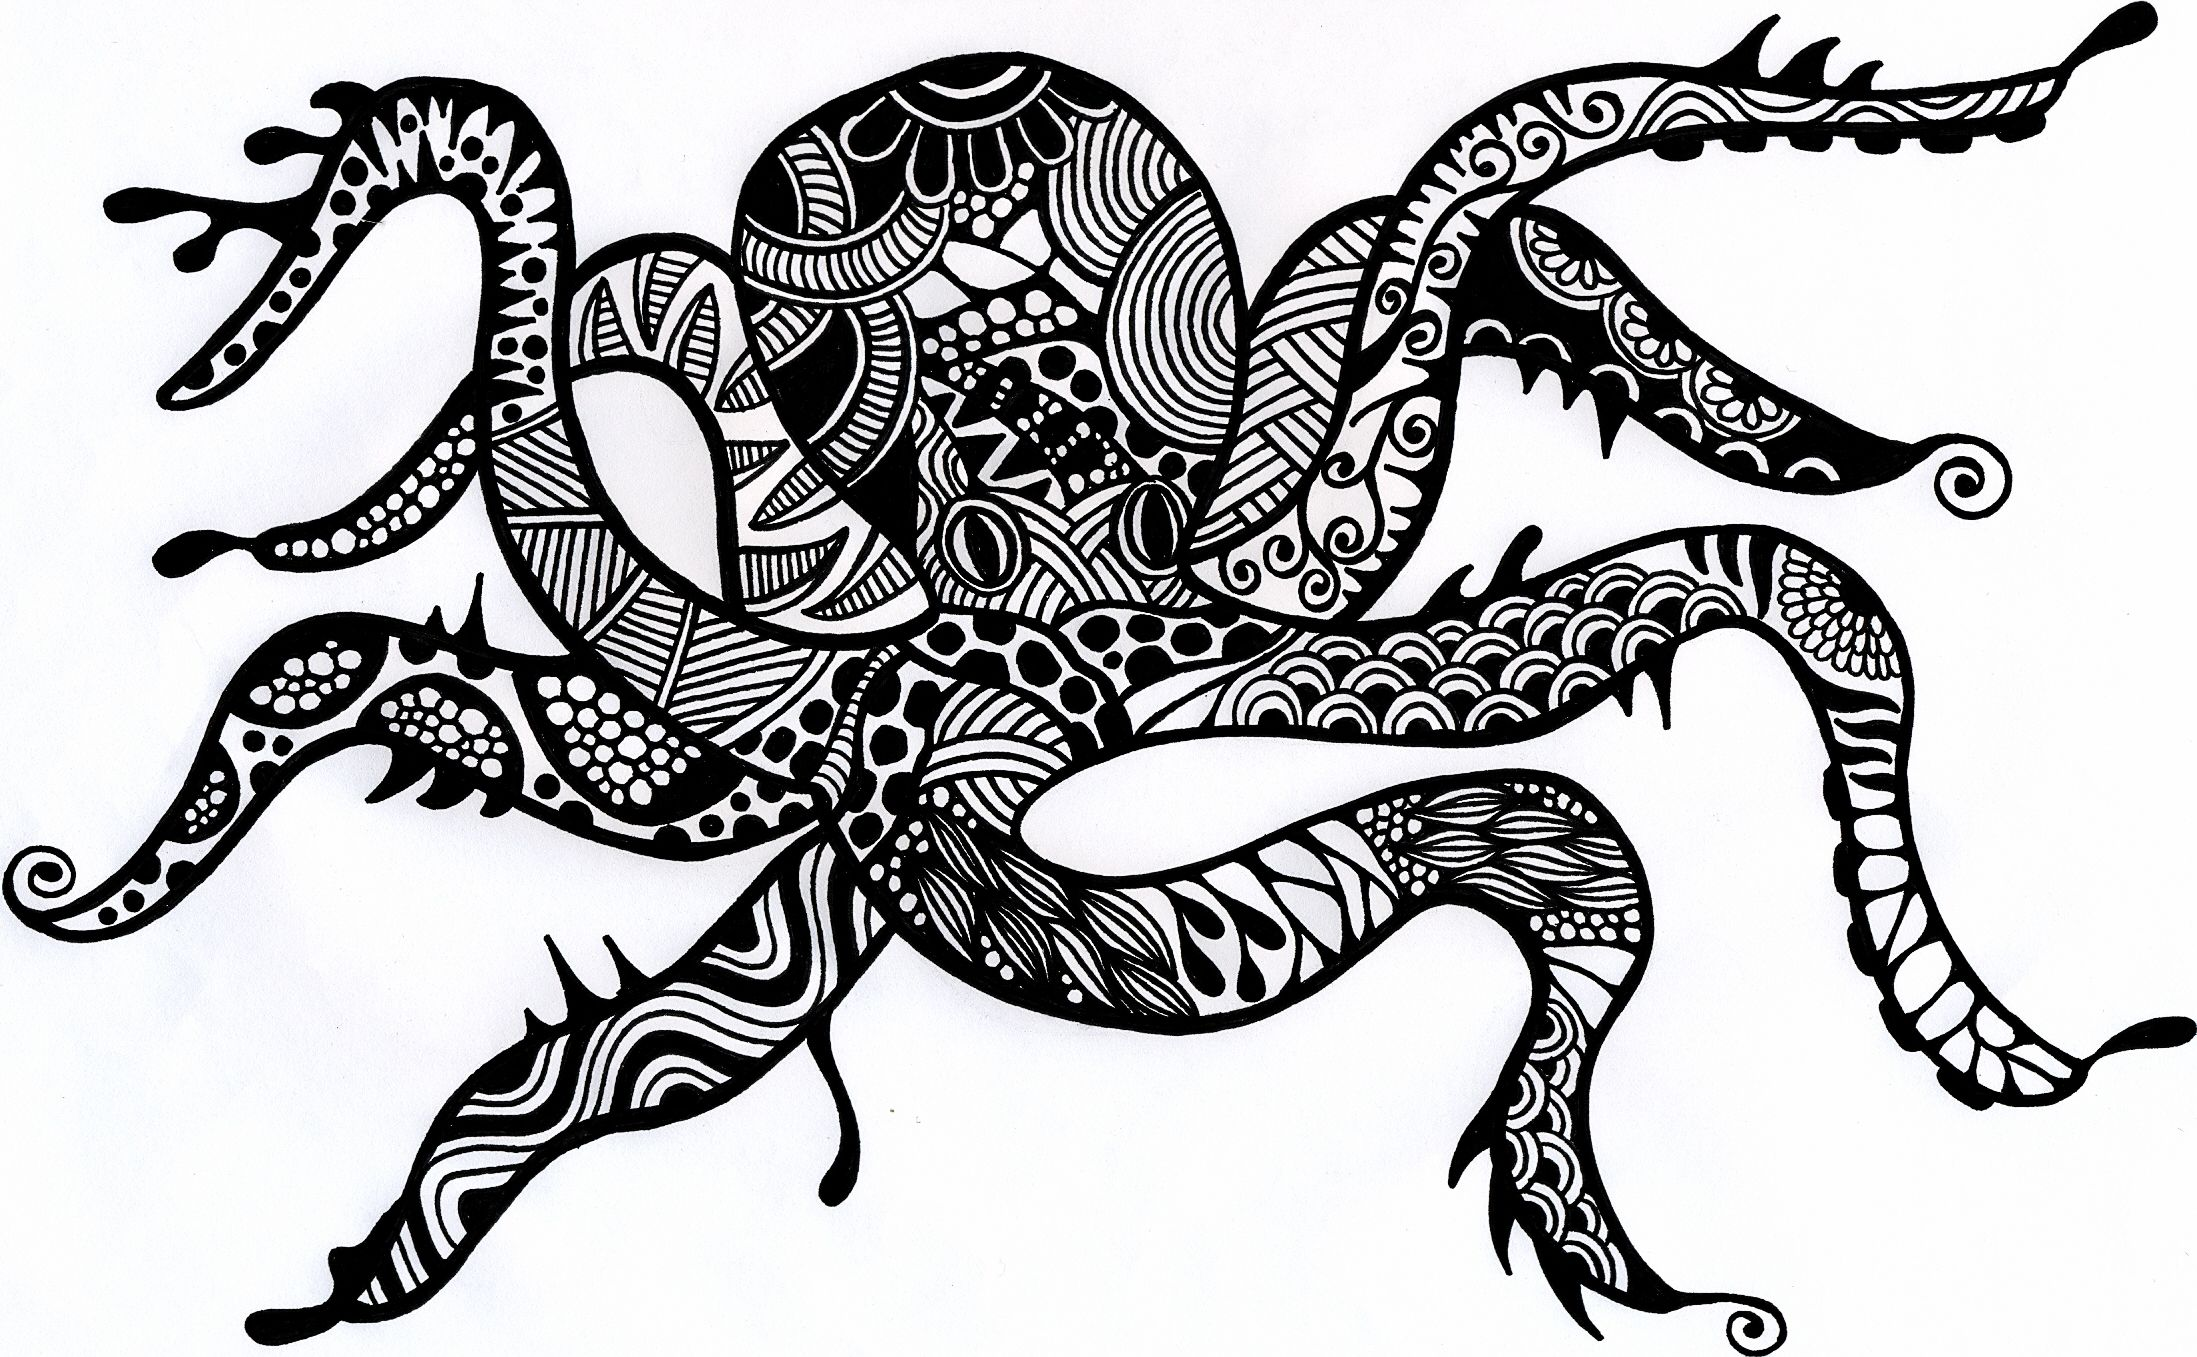 the gallery for gt octopus black and white drawing